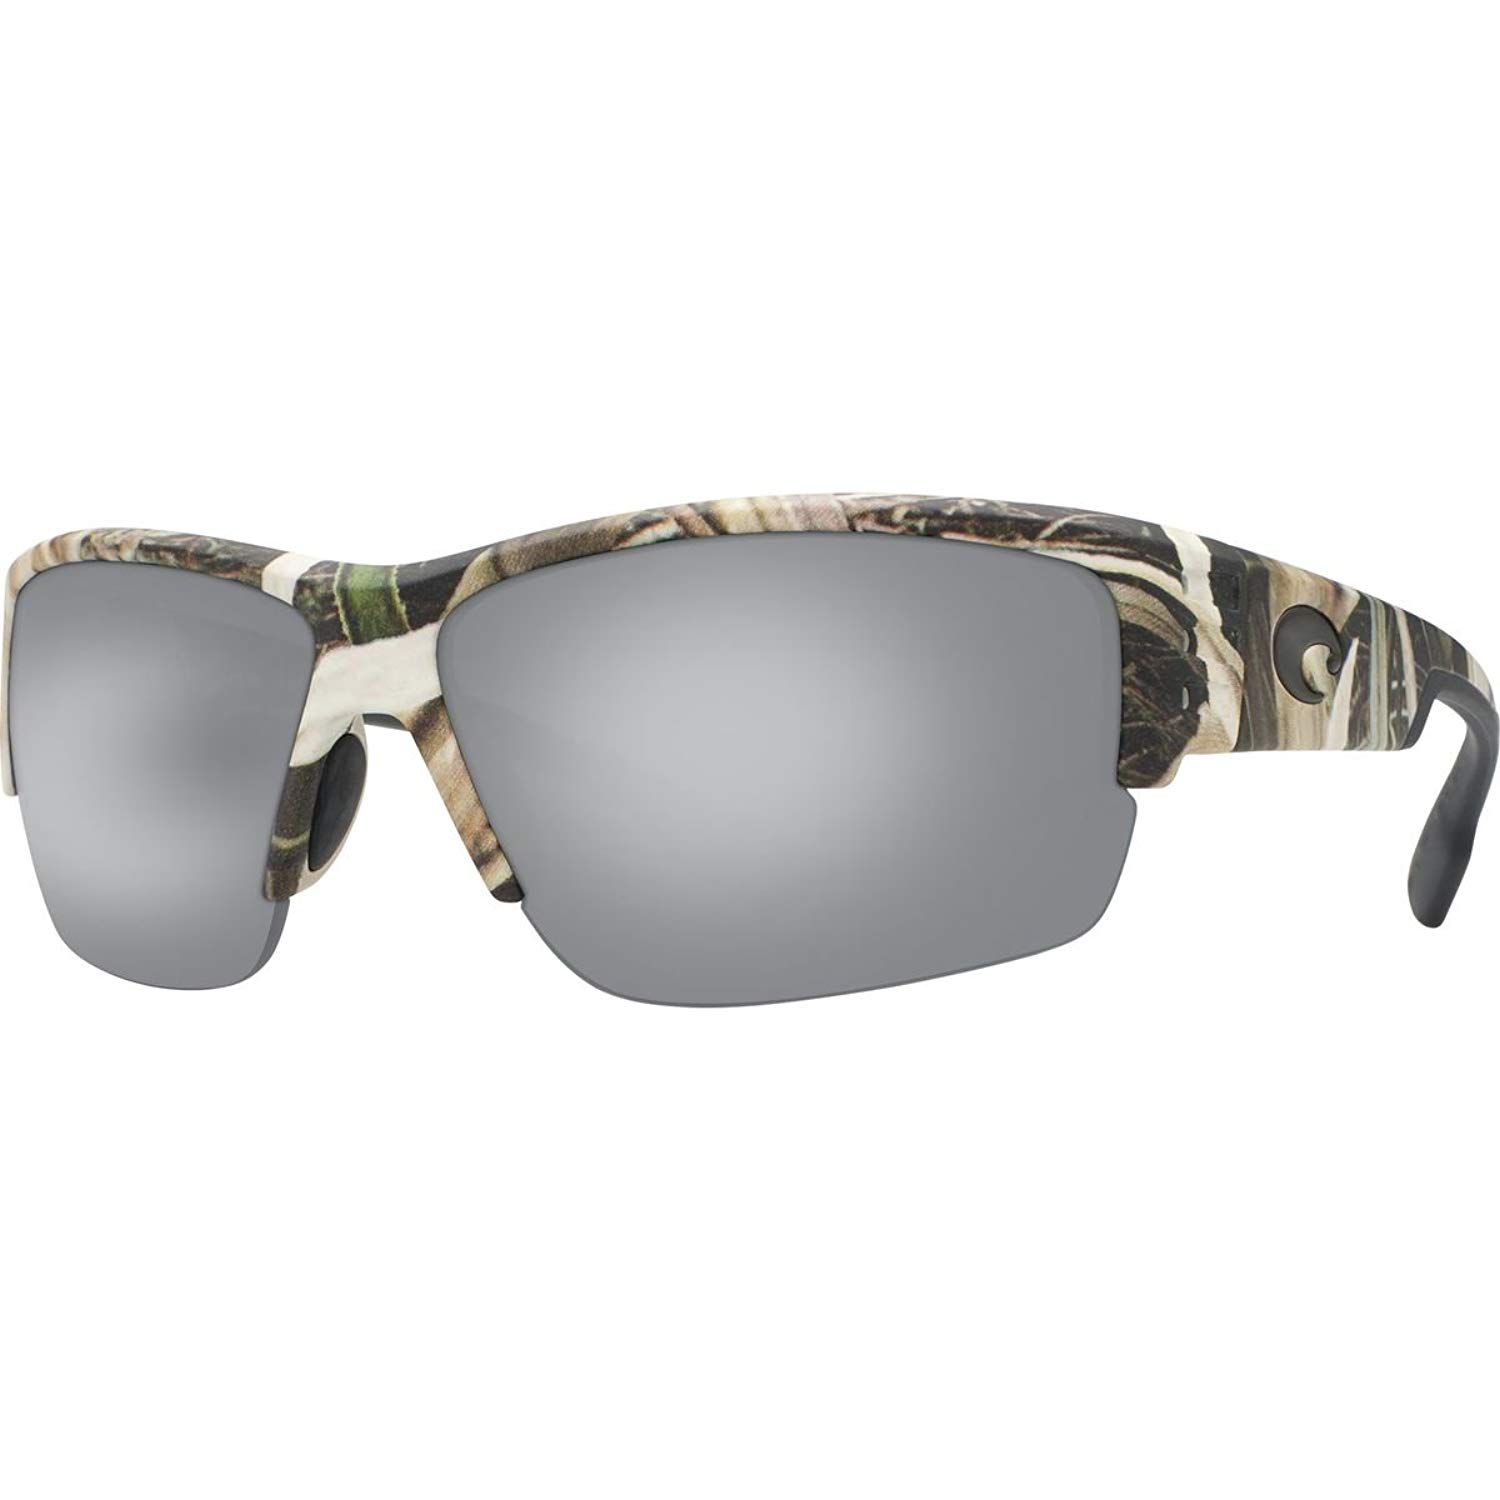 34b6999e59 Get Quotations · Costa Del Mar Sunglasses - Hatch- Plastic   Frame  Mossy  Oak Shadow Grass Blades